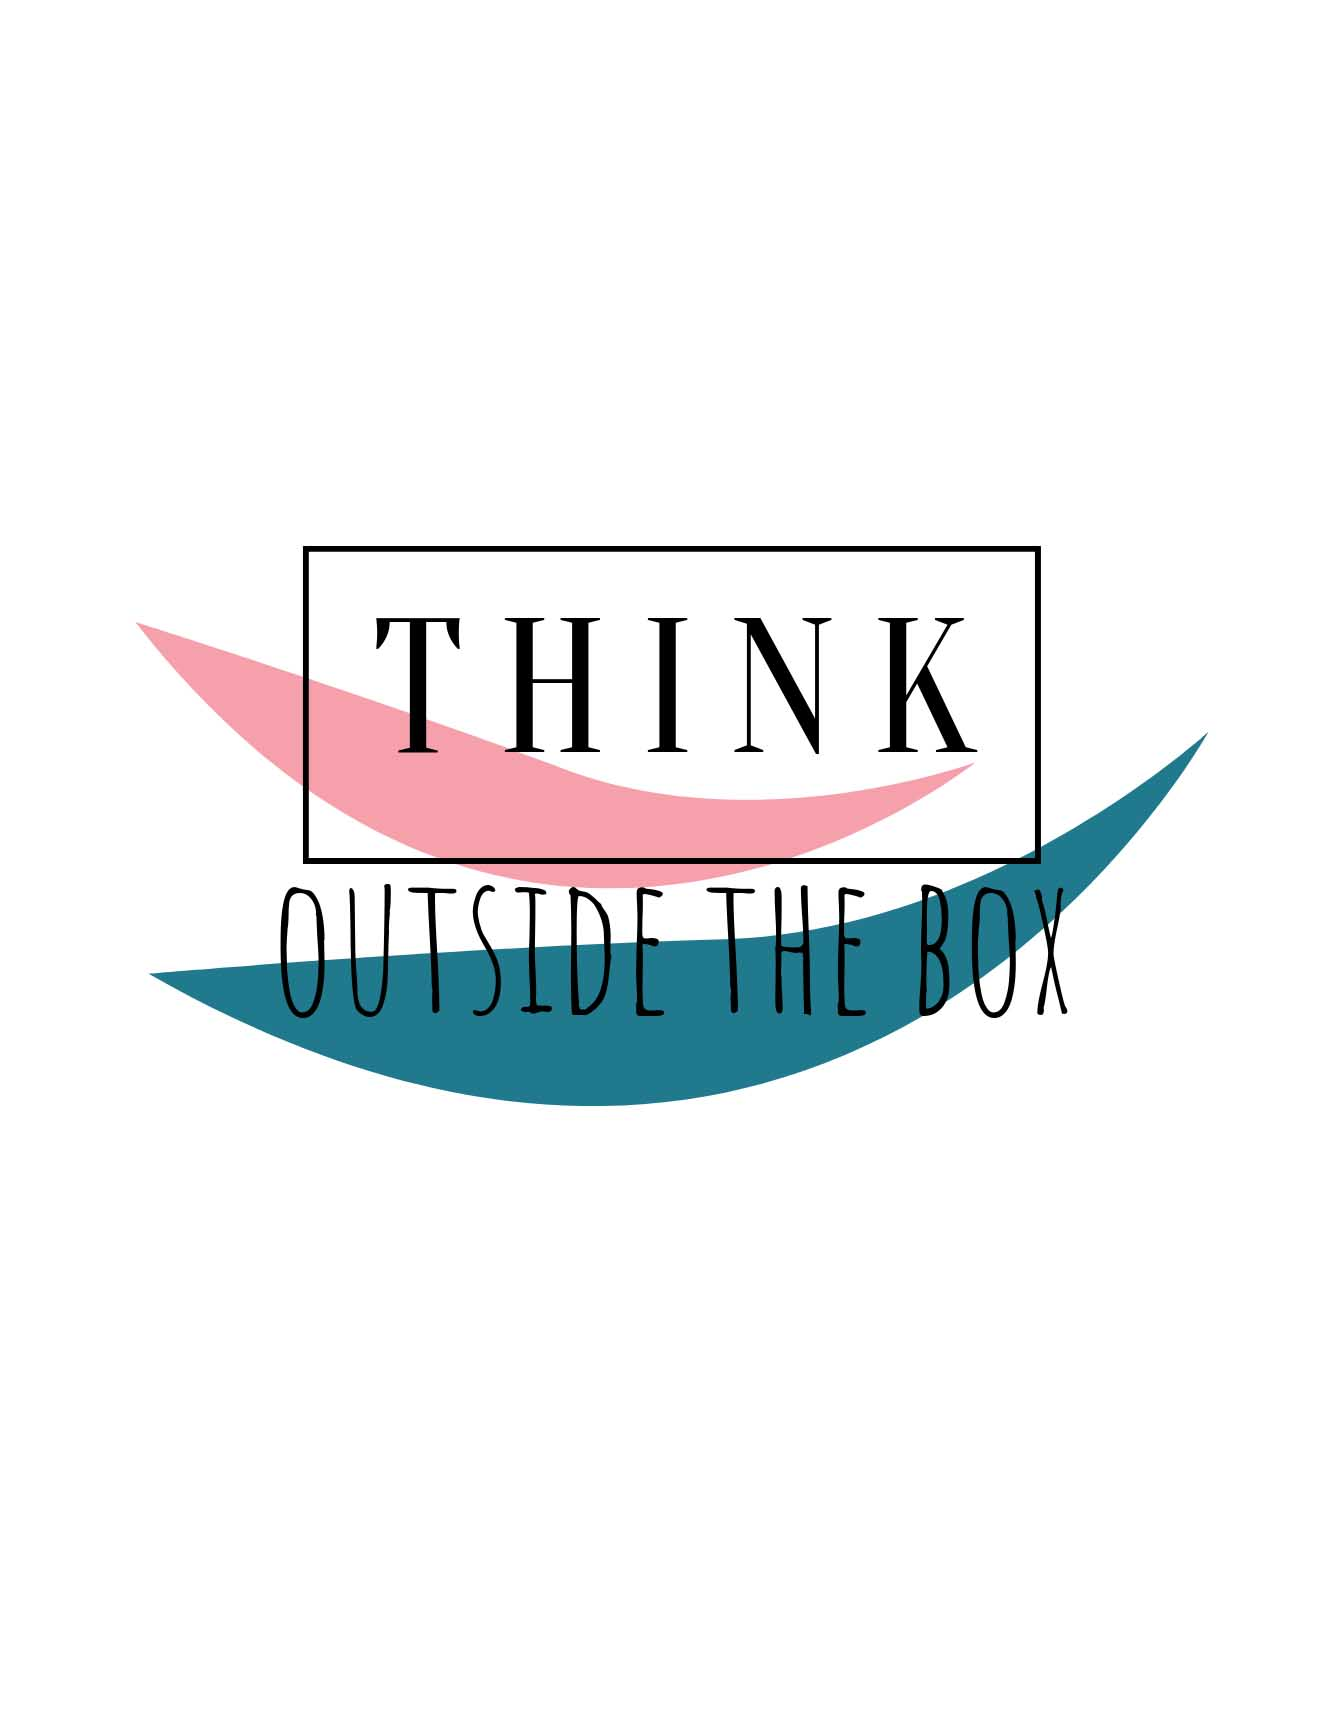 THINK outside the box2